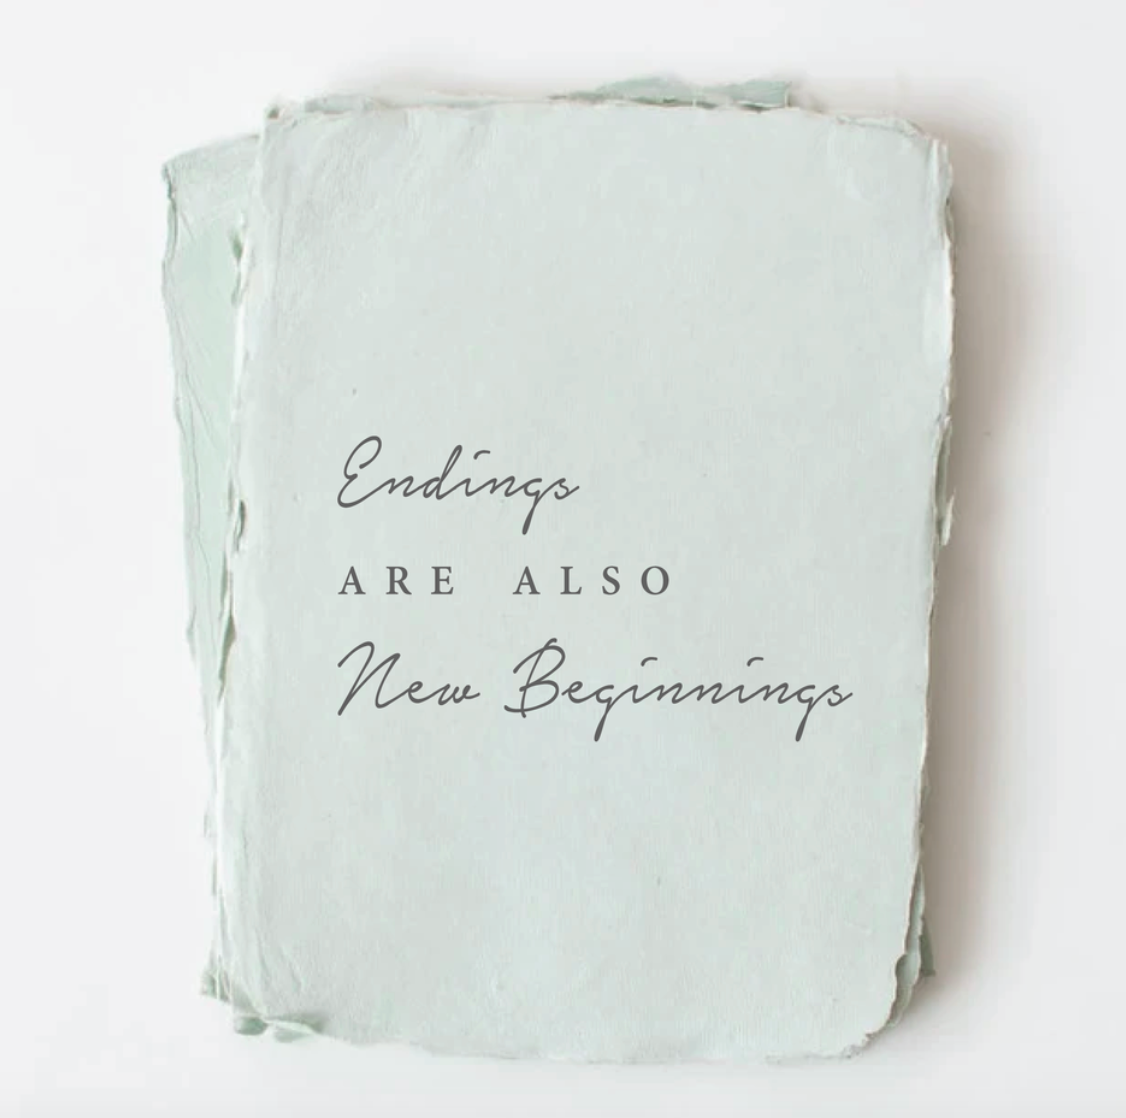 Endings are Also New Beginnings